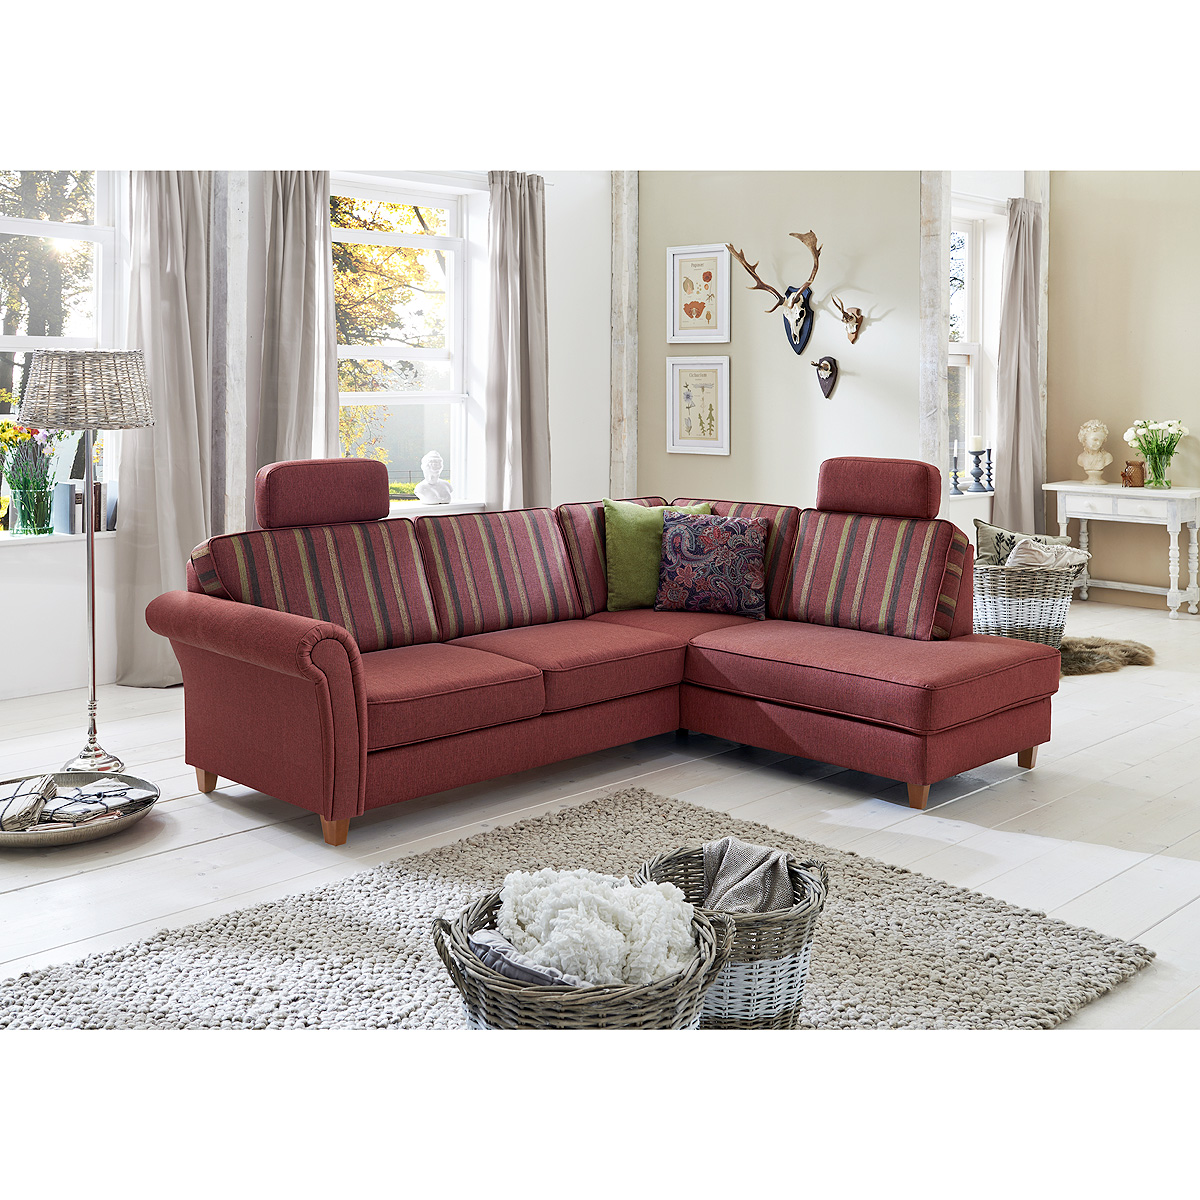 ecksofa baltrum sofa wohnlandschaft polsterm bel bordeaux im landhaus stil 247 ebay. Black Bedroom Furniture Sets. Home Design Ideas